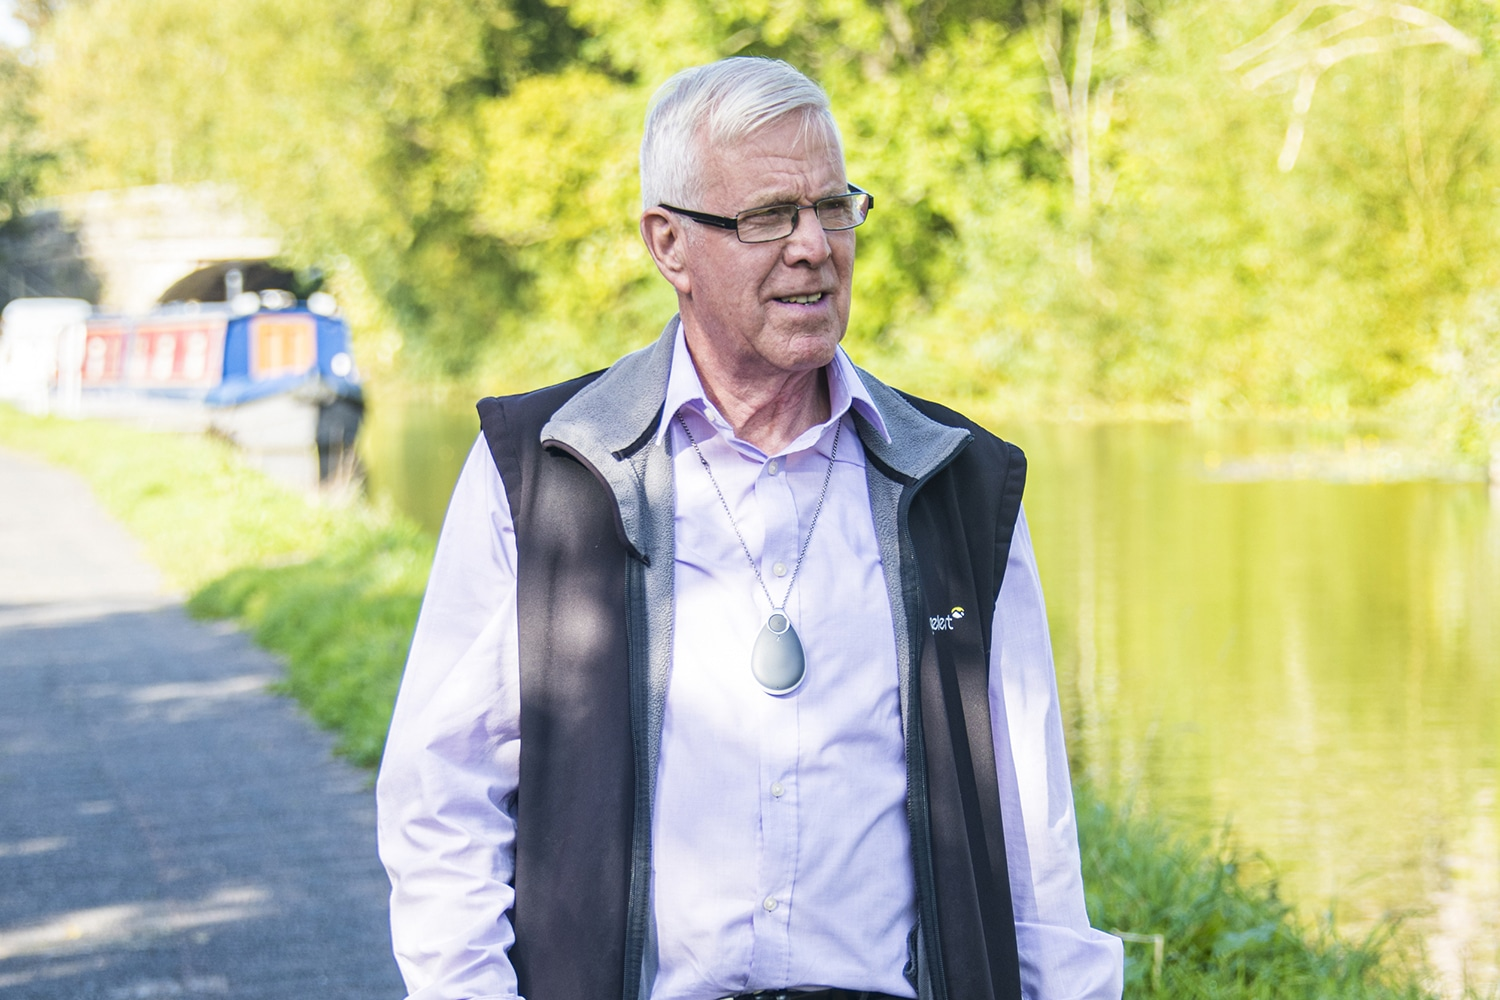 Older man walking along a canal